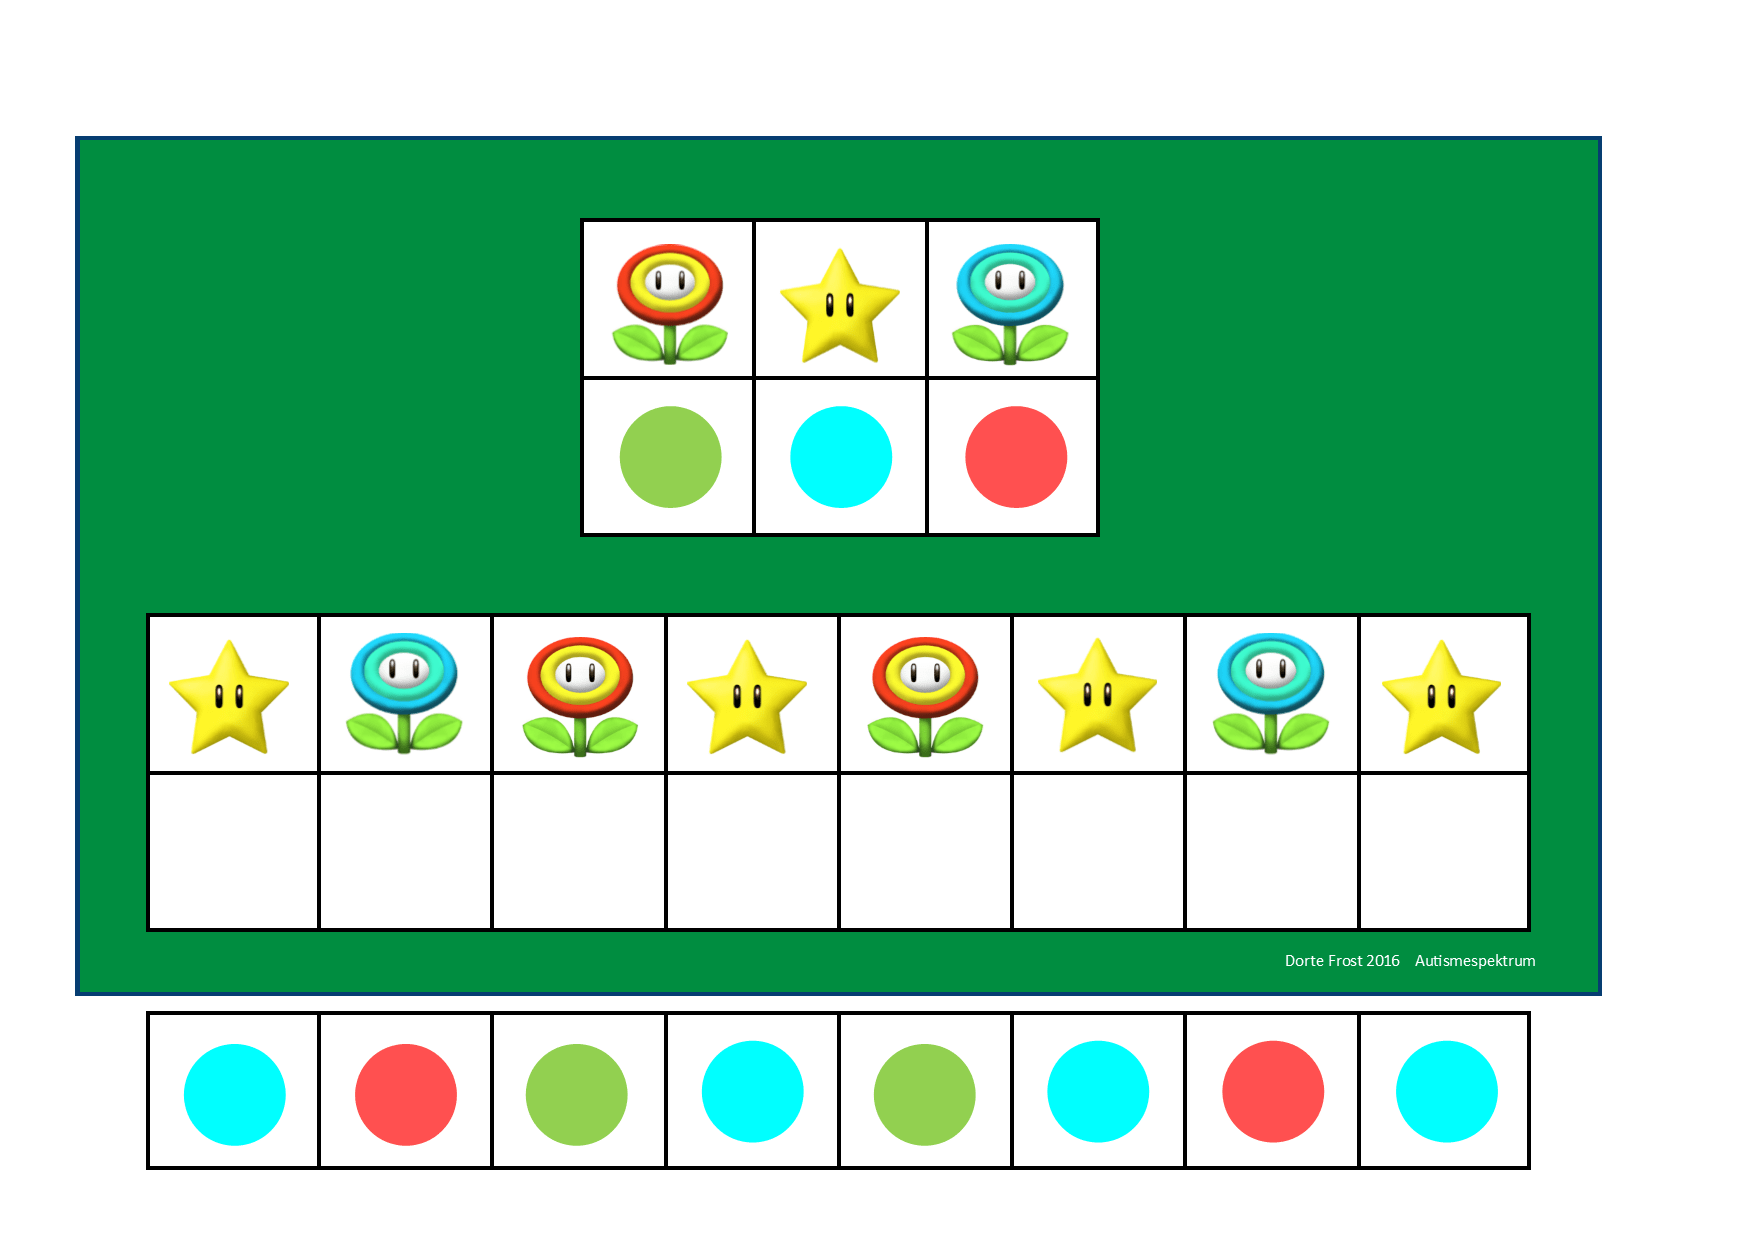 Board And Tiles For The Mario Visual Perception Game By